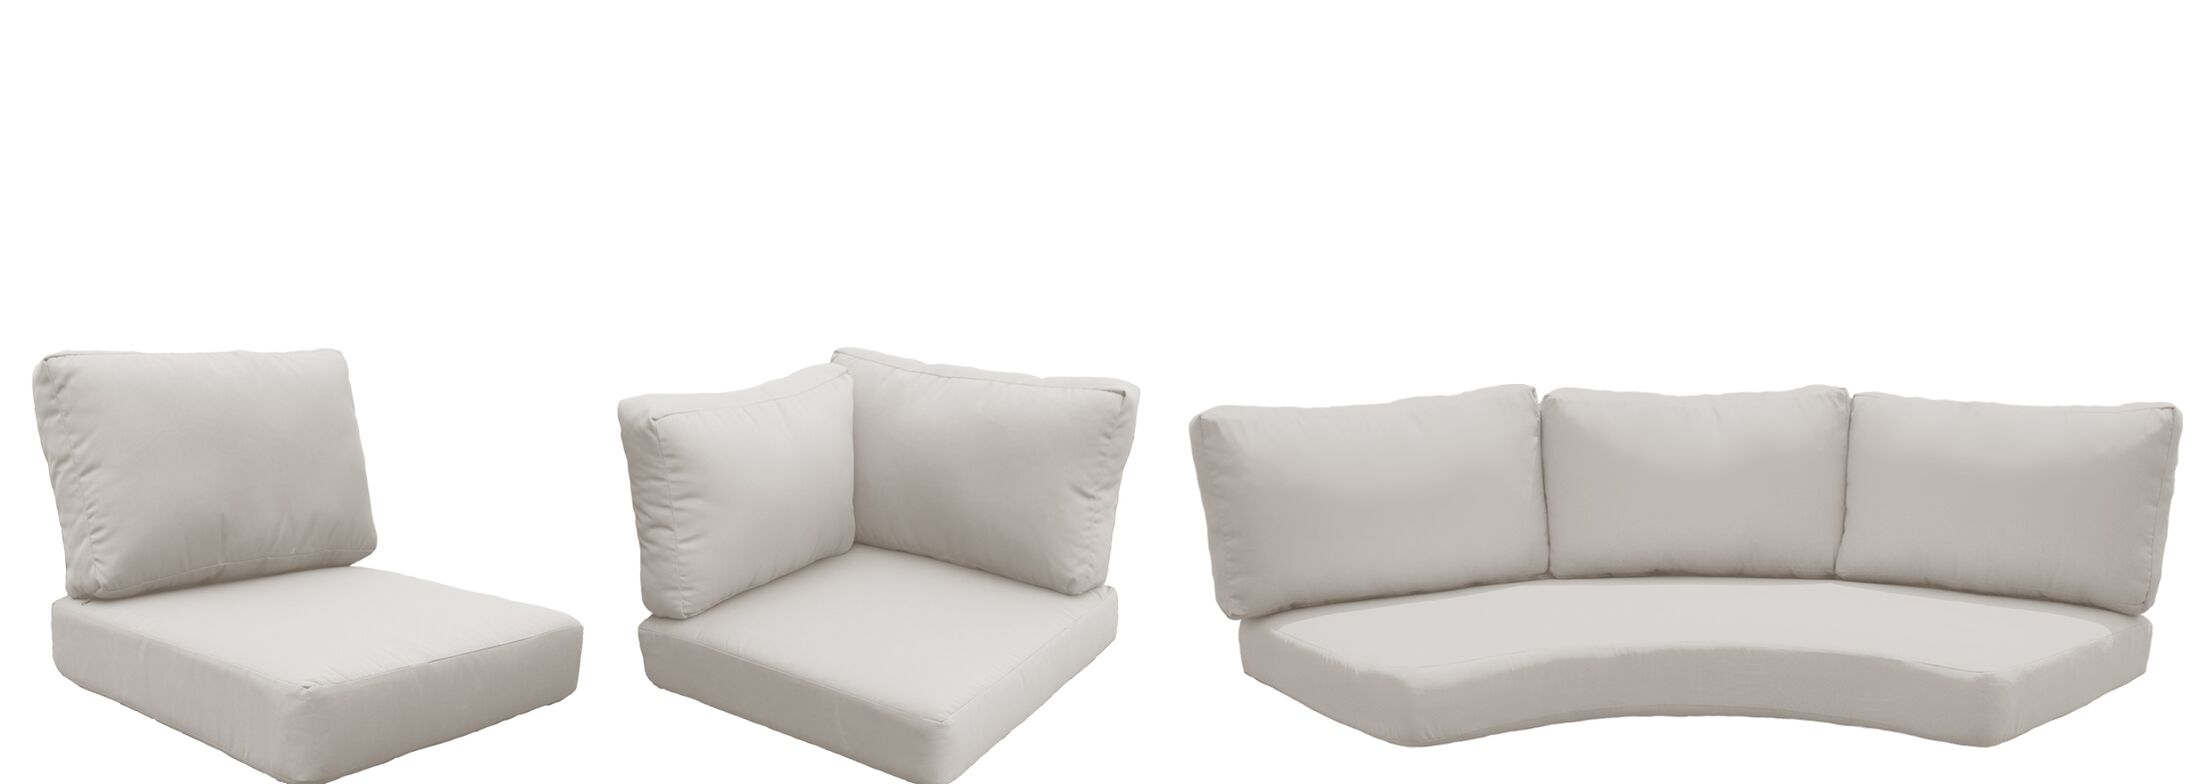 Florence 14 Piece Outdoor Cushion Set Fabric: Beige